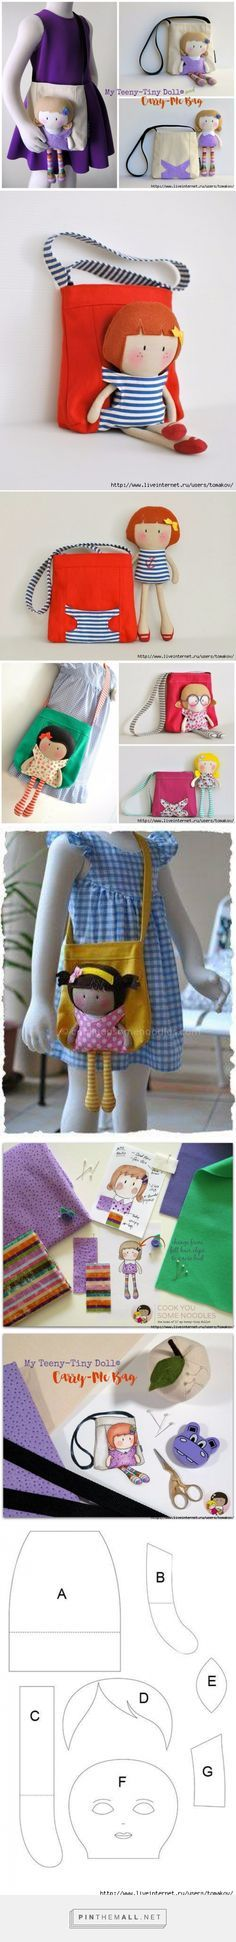 Doll with carry bag https://pinthemall.net/pin/56ba16719ce2a/?creation=1